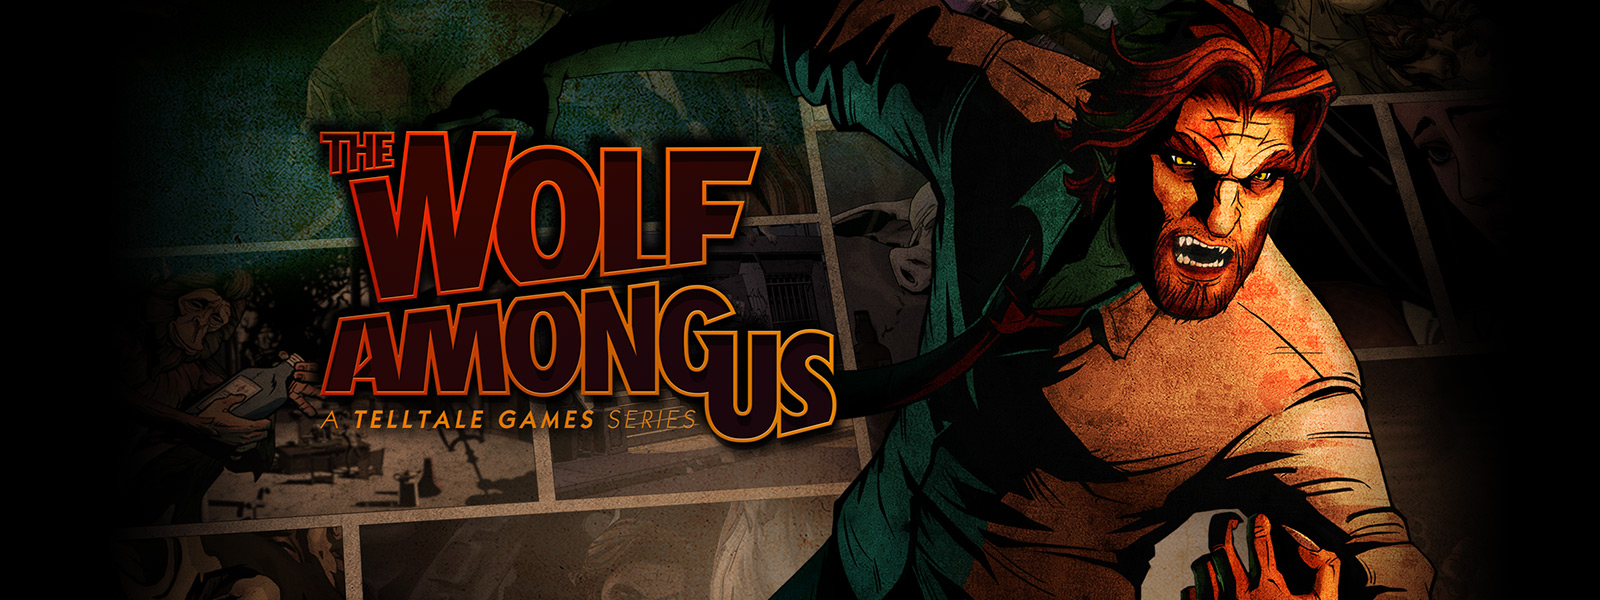 The Wolf Among Us – A Telltale Games Series